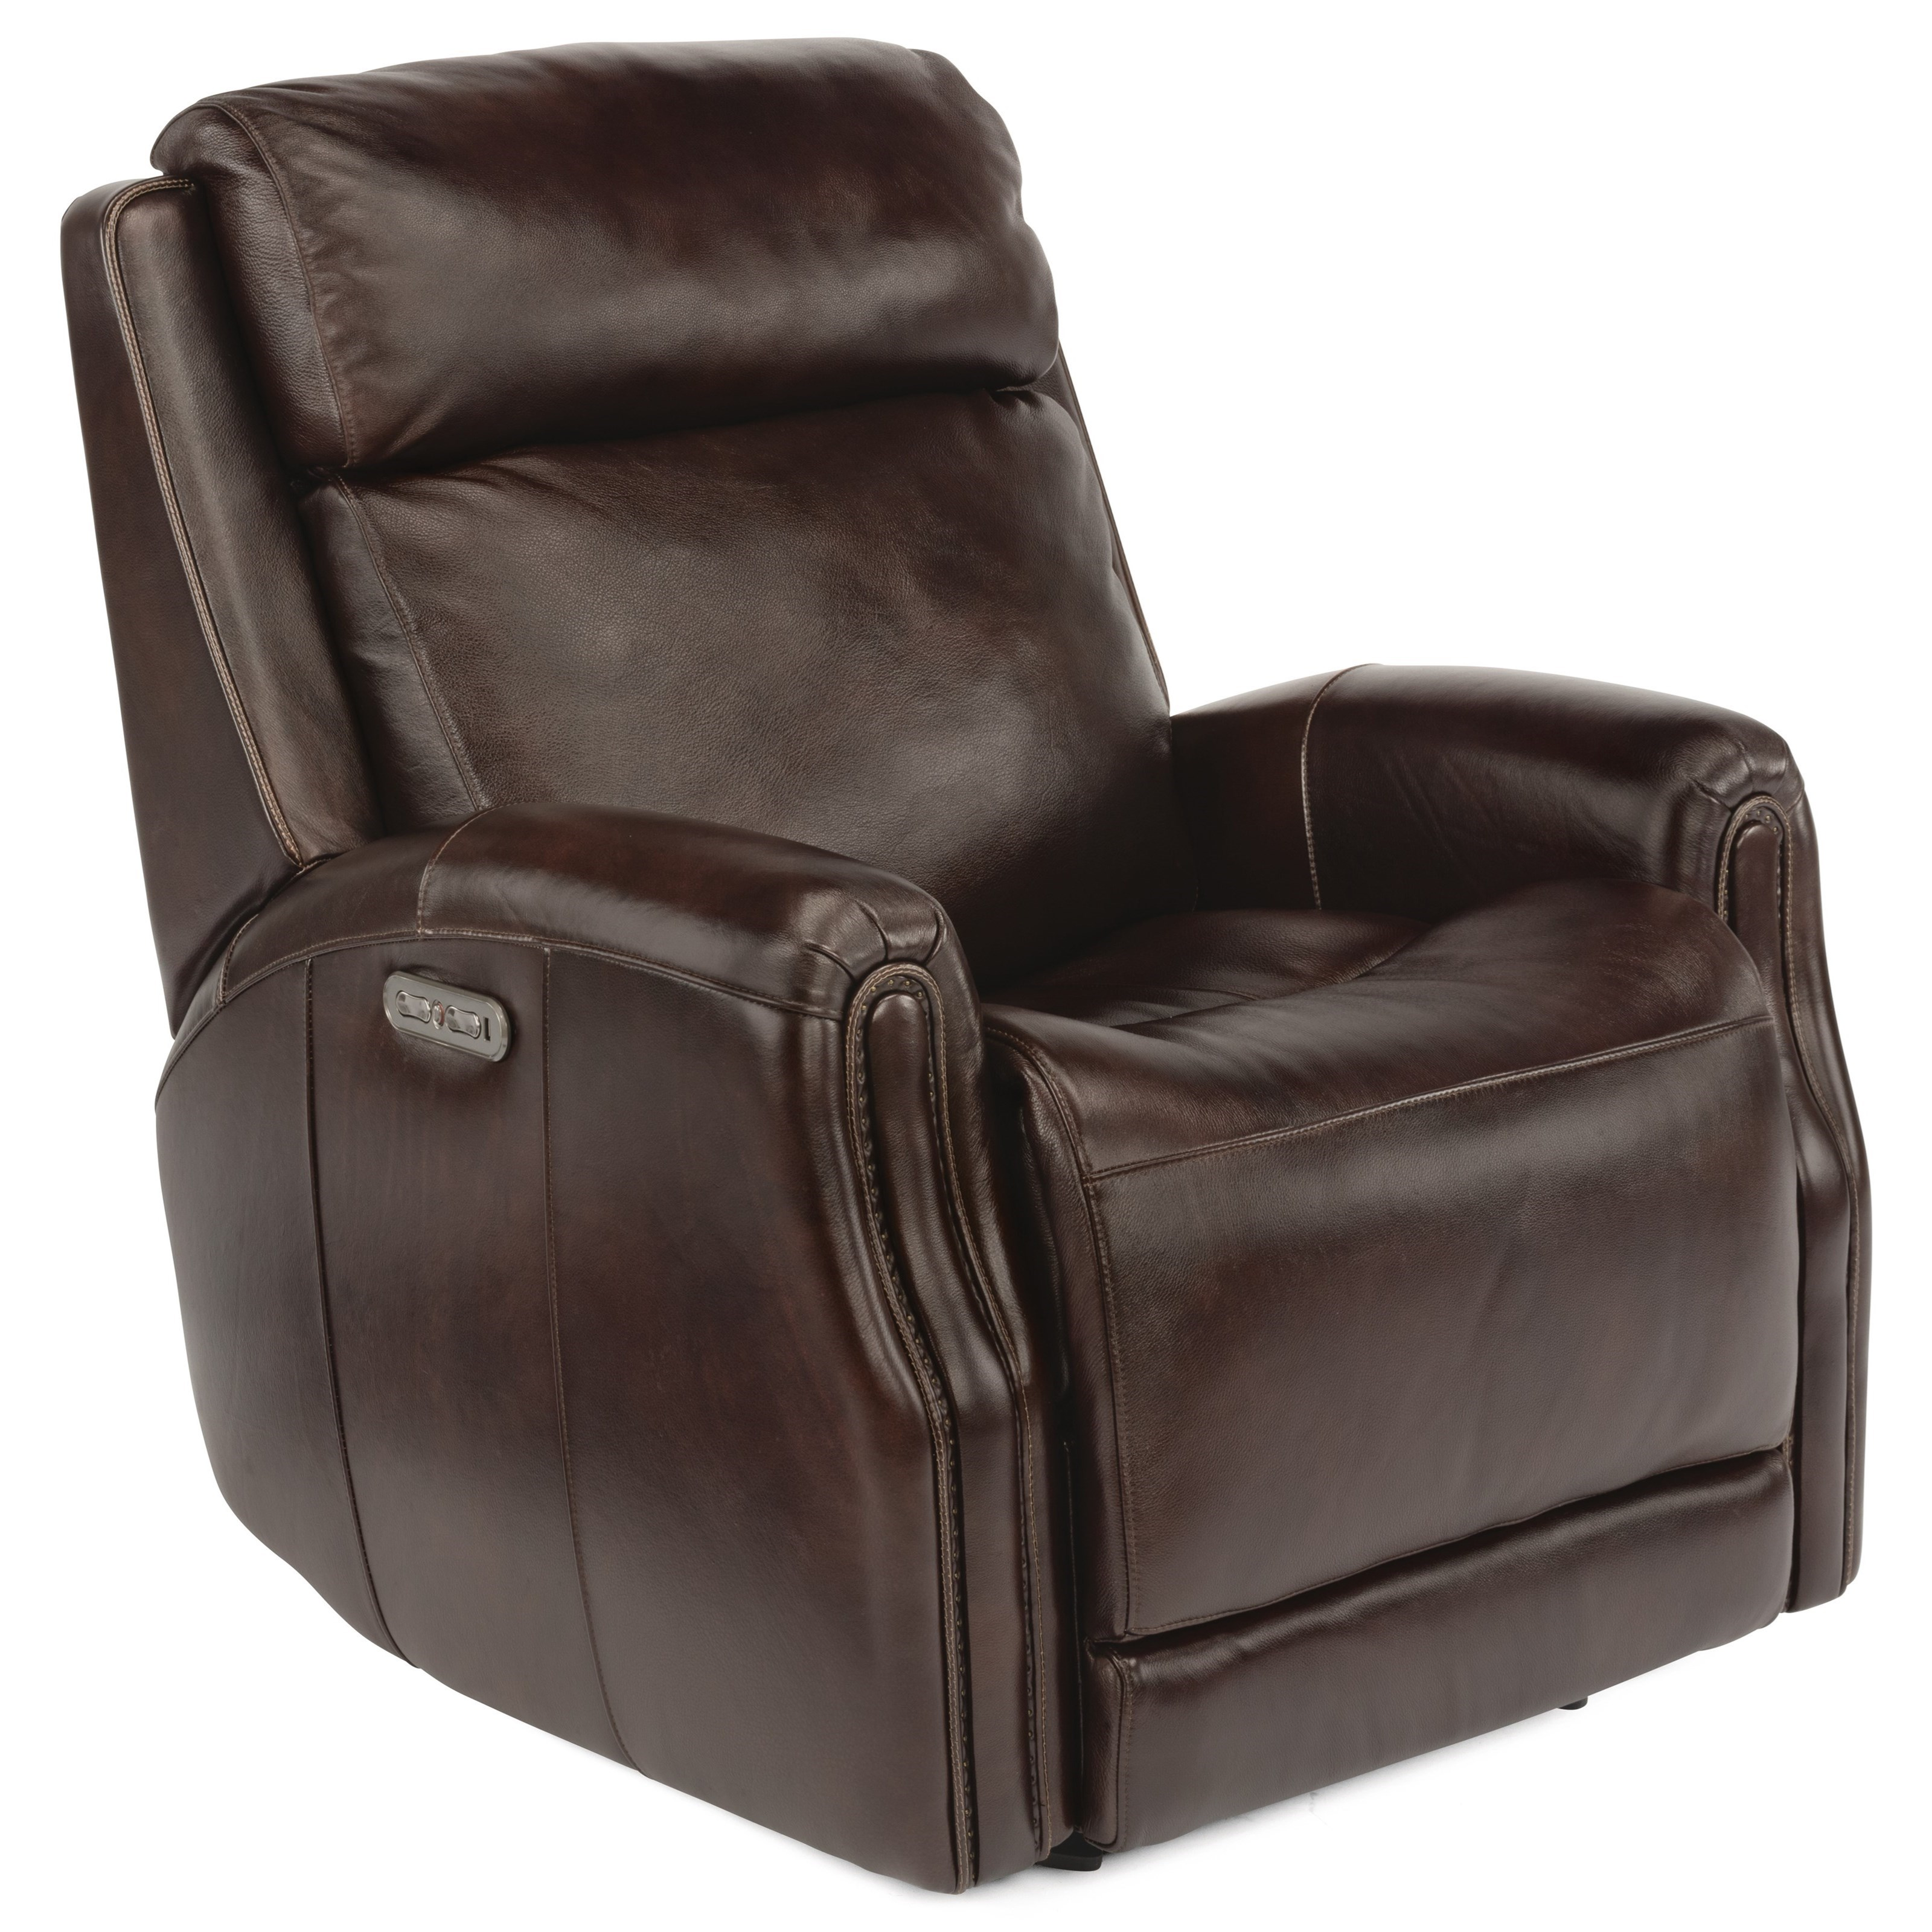 Power Gliding Leather Recliner